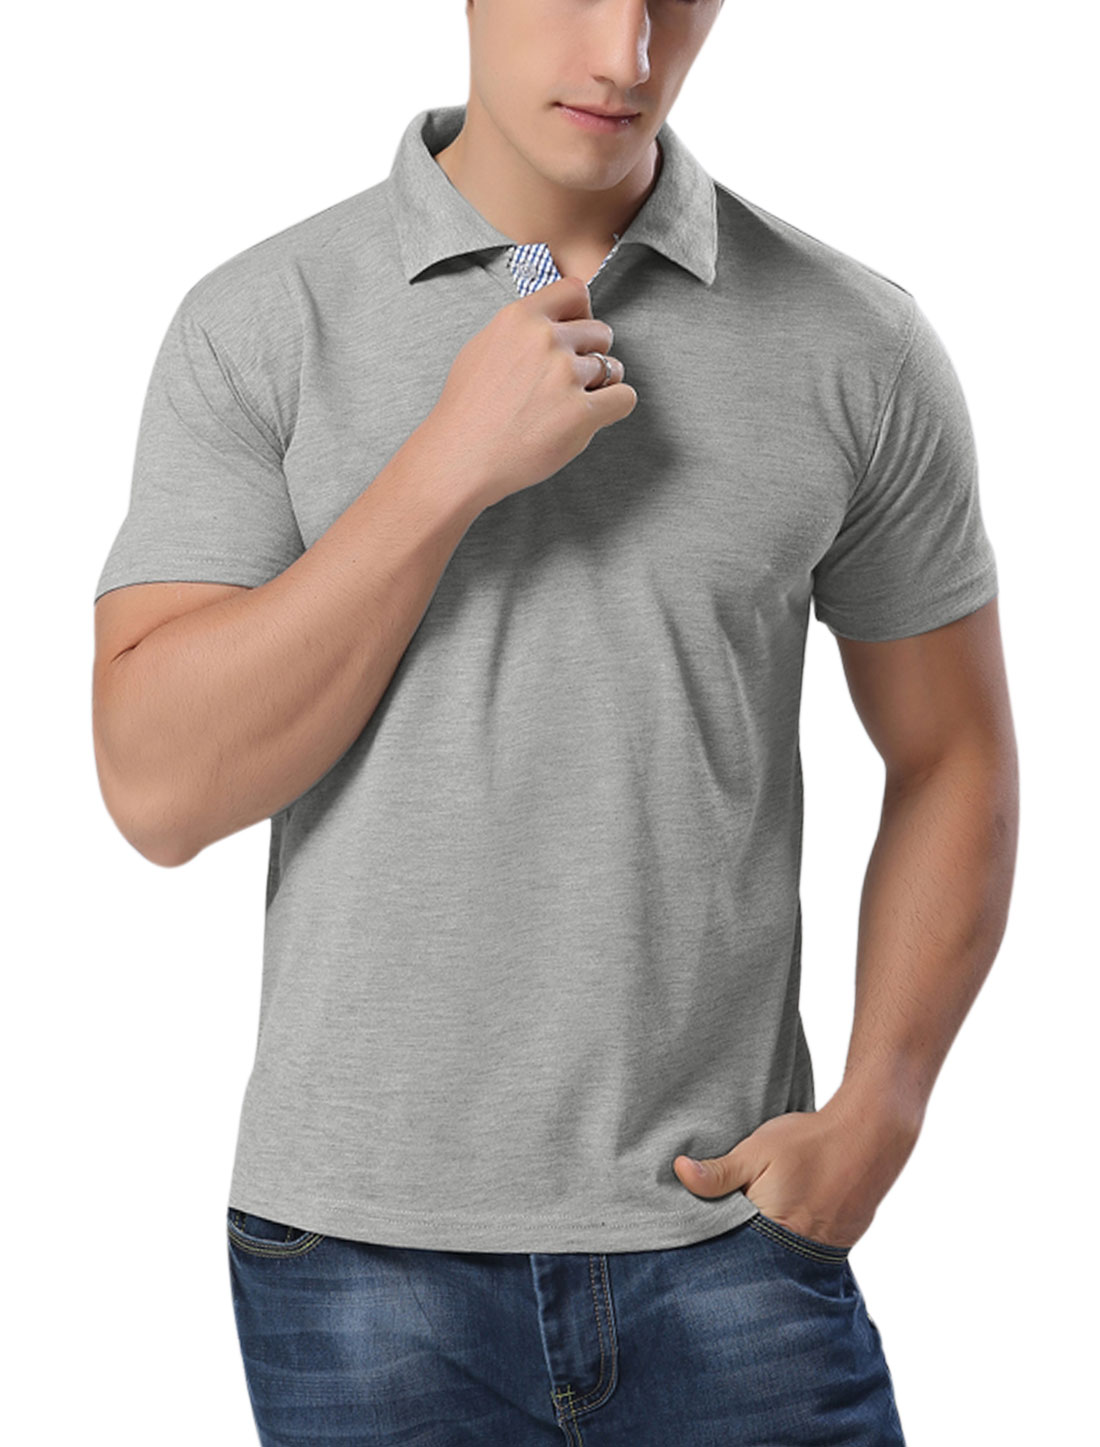 Men Point Collar Button Closed Casual Polo Shirts Light Gray L